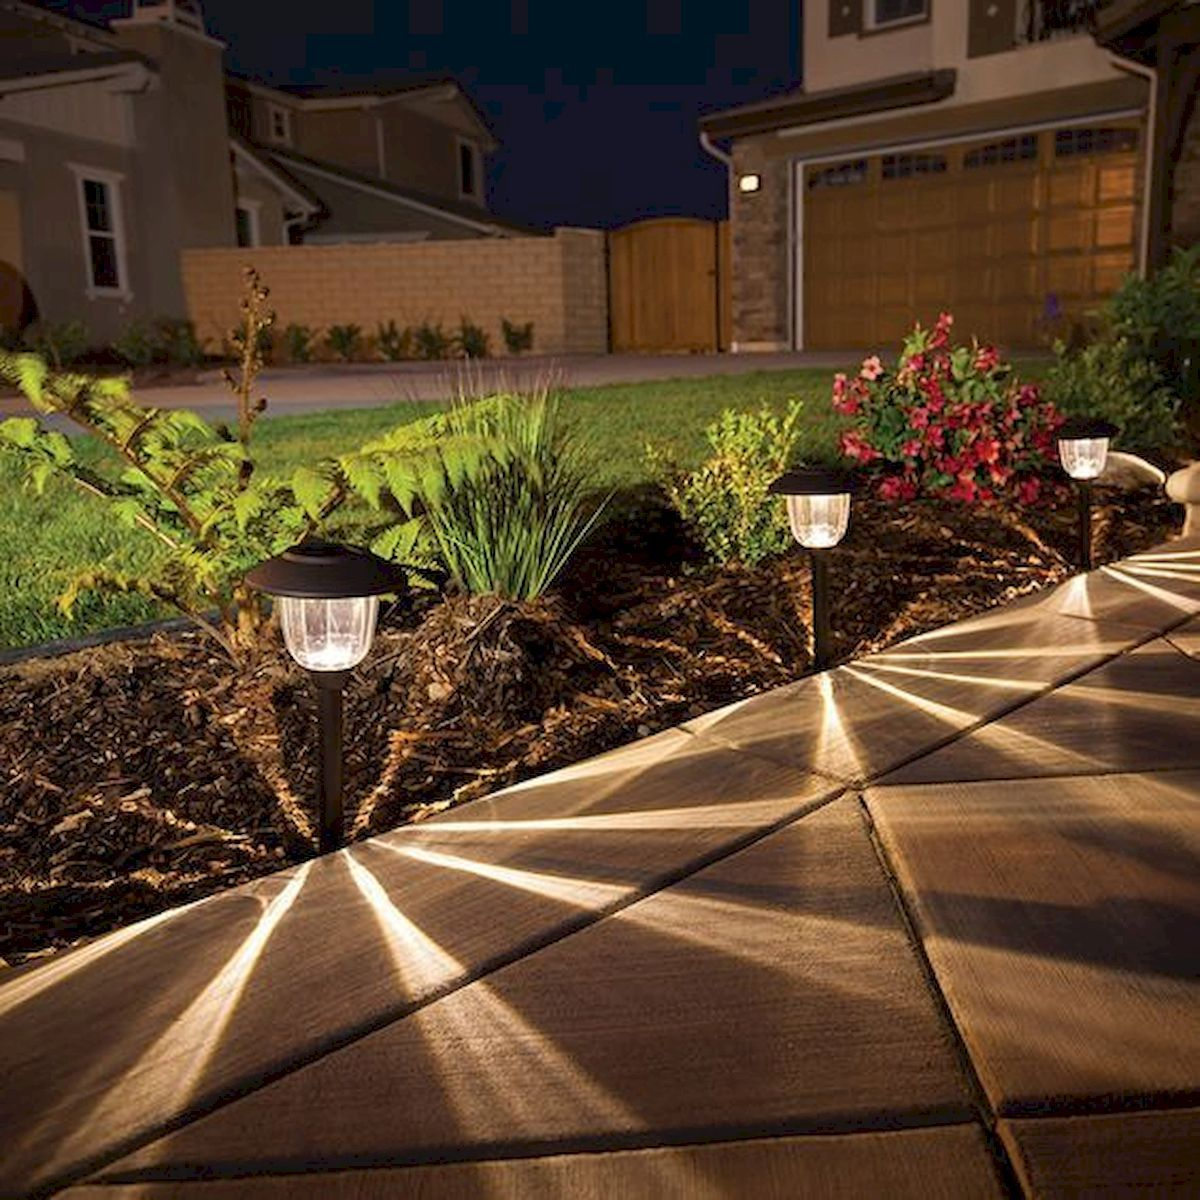 55 Stunning Garden Lighting Design Ideas And Remodel – CoachDecor.com